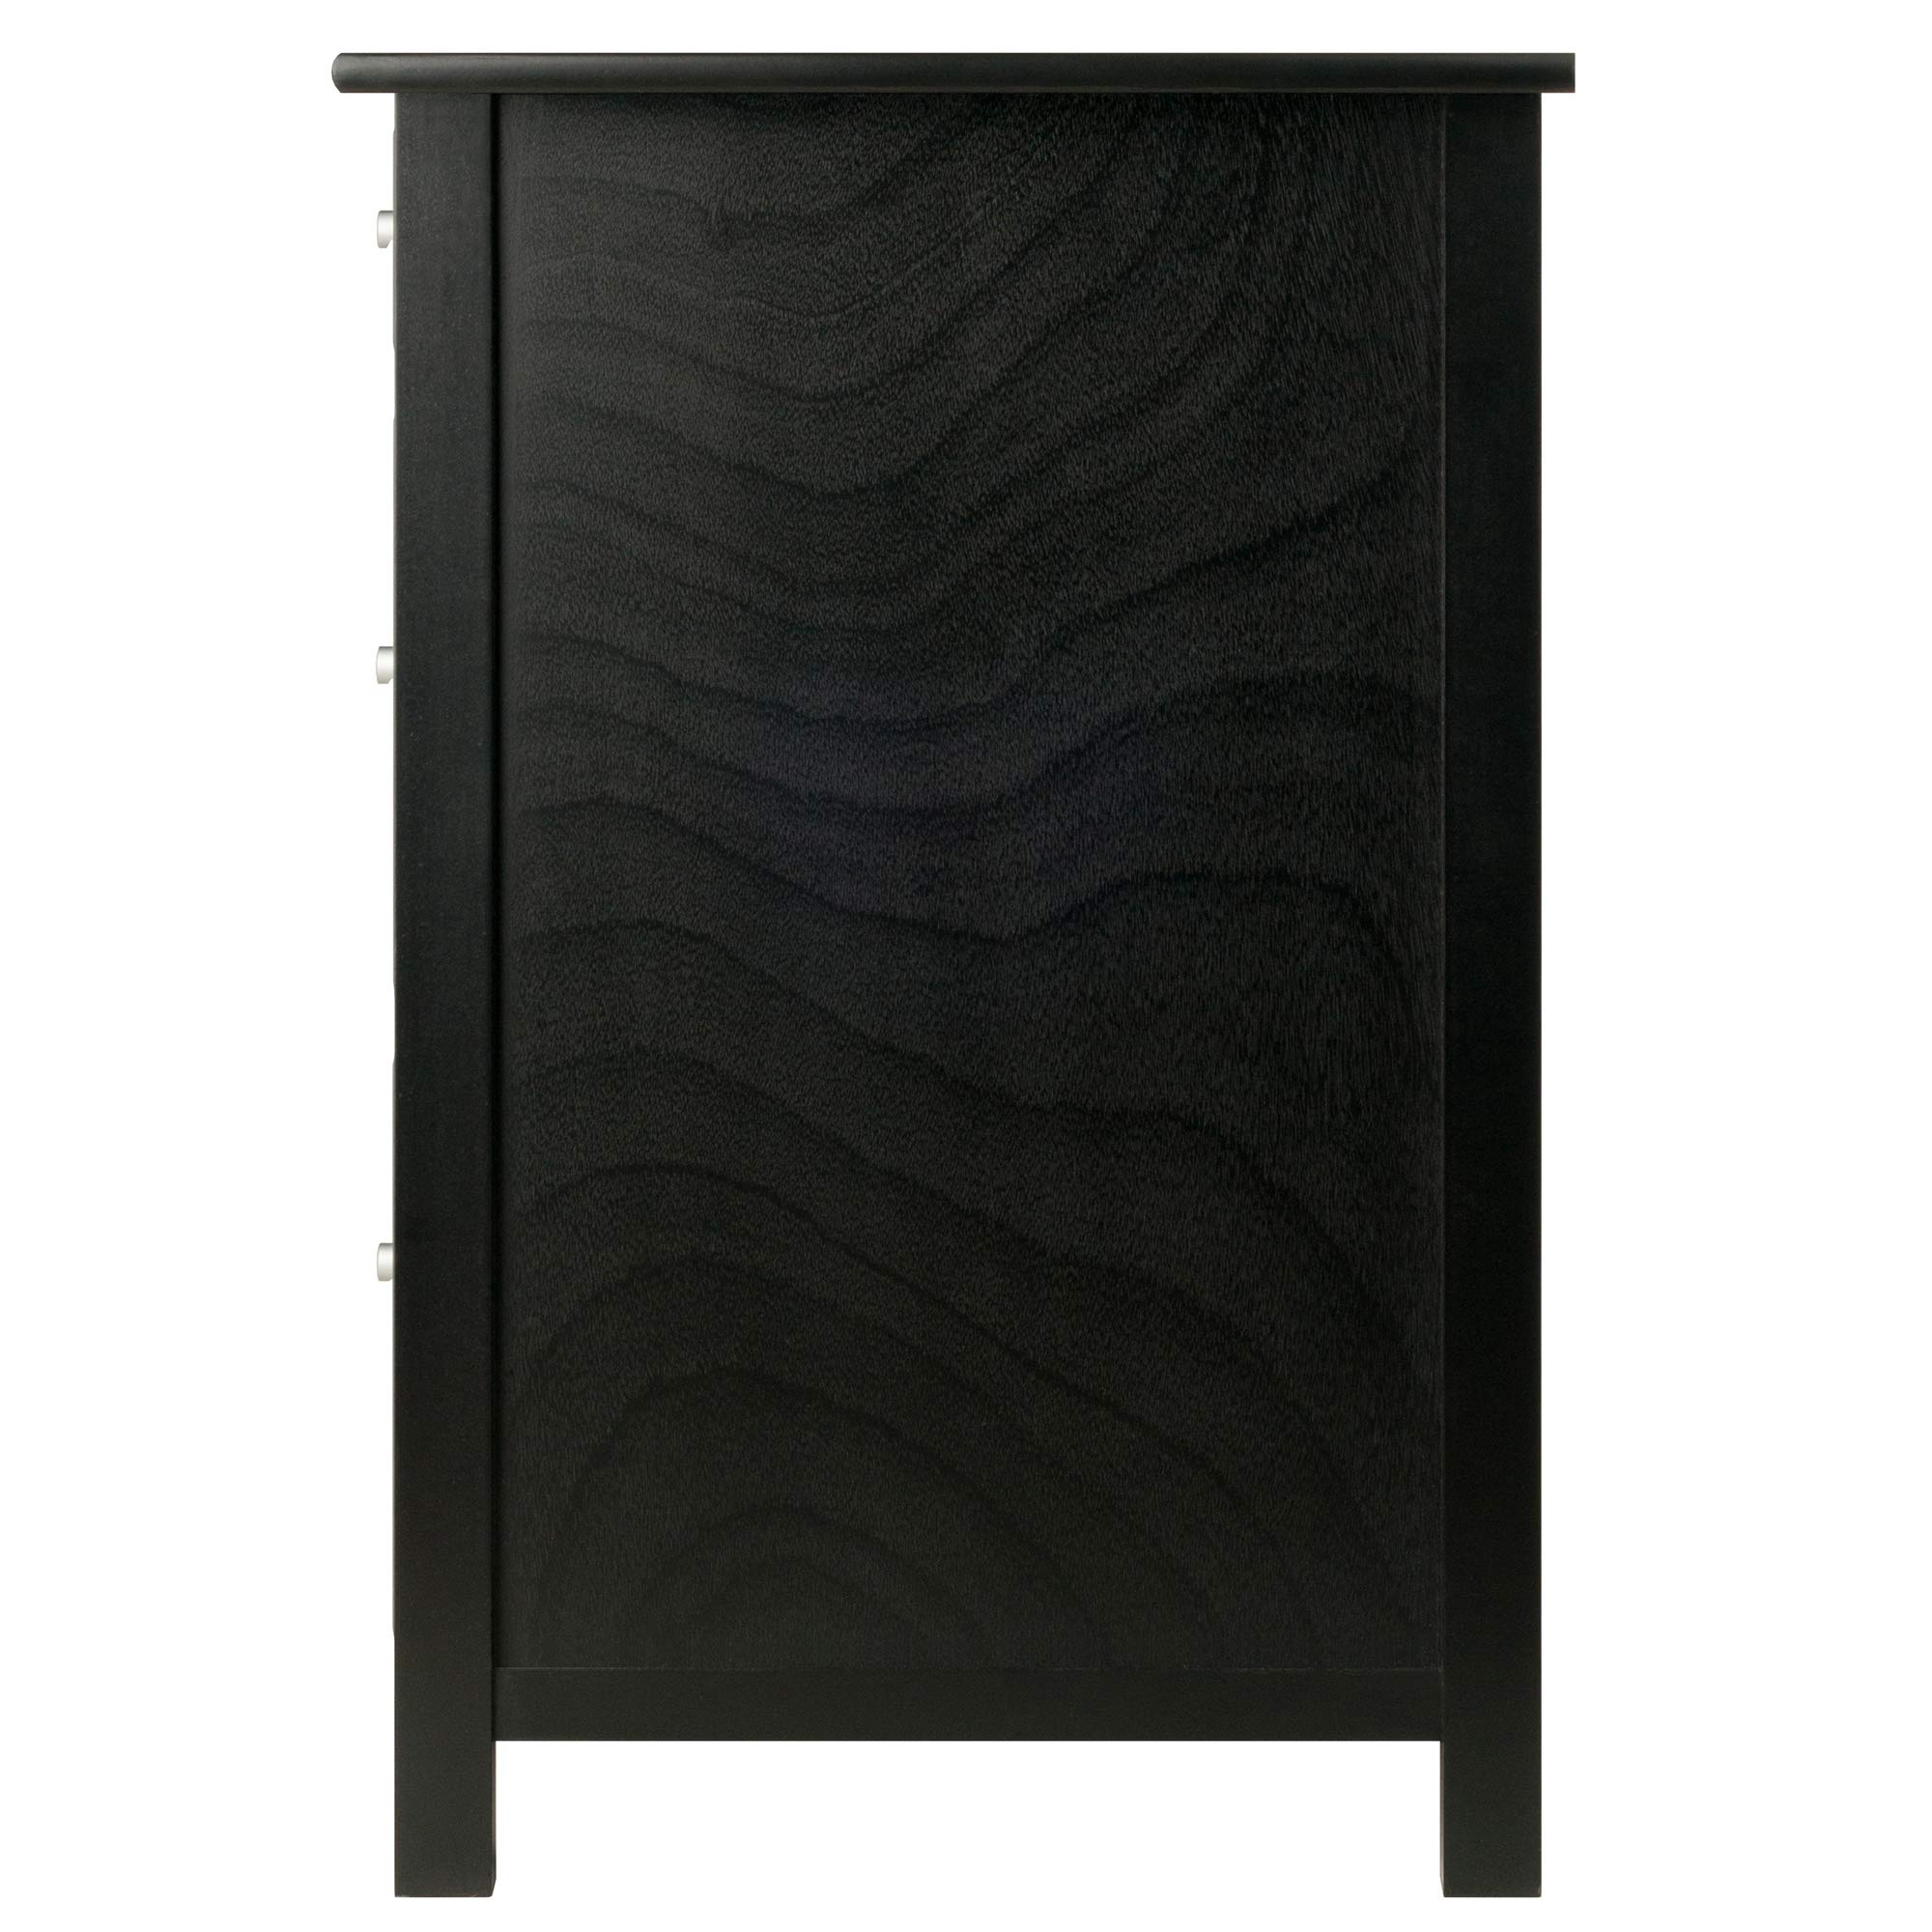 Winsome Wood 22321 Delta File Cabinet Black Home Office, by Winsome Wood (Image #5)